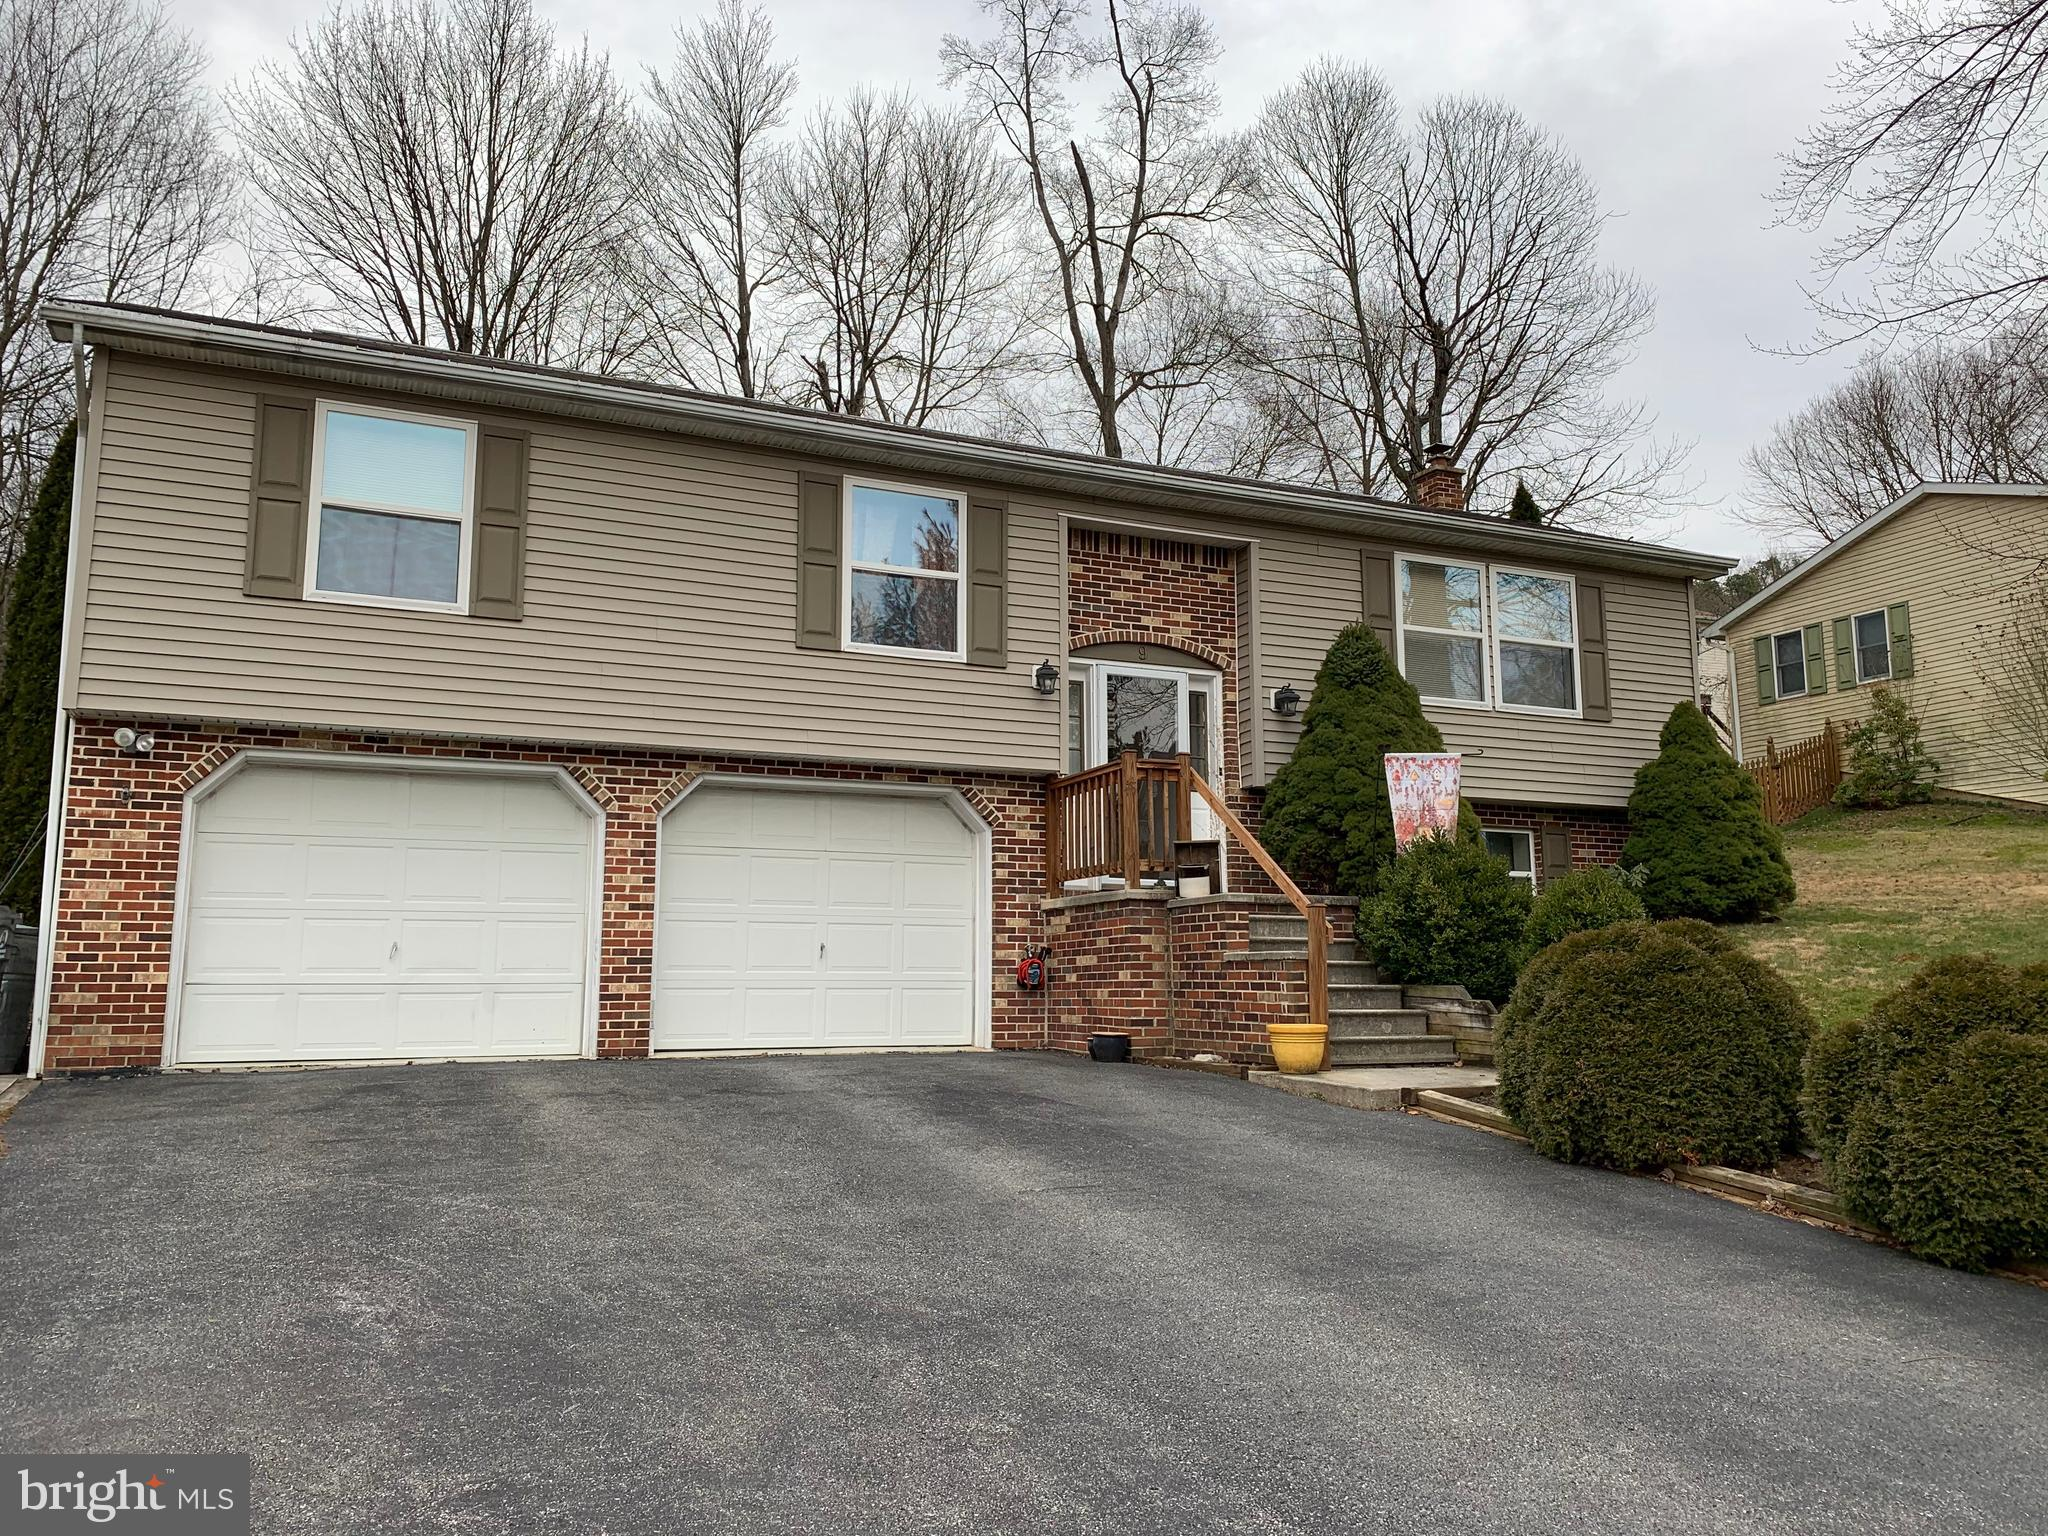 9 LIBERTY DRIVE, MOUNT HOLLY SPRINGS, PA 17065